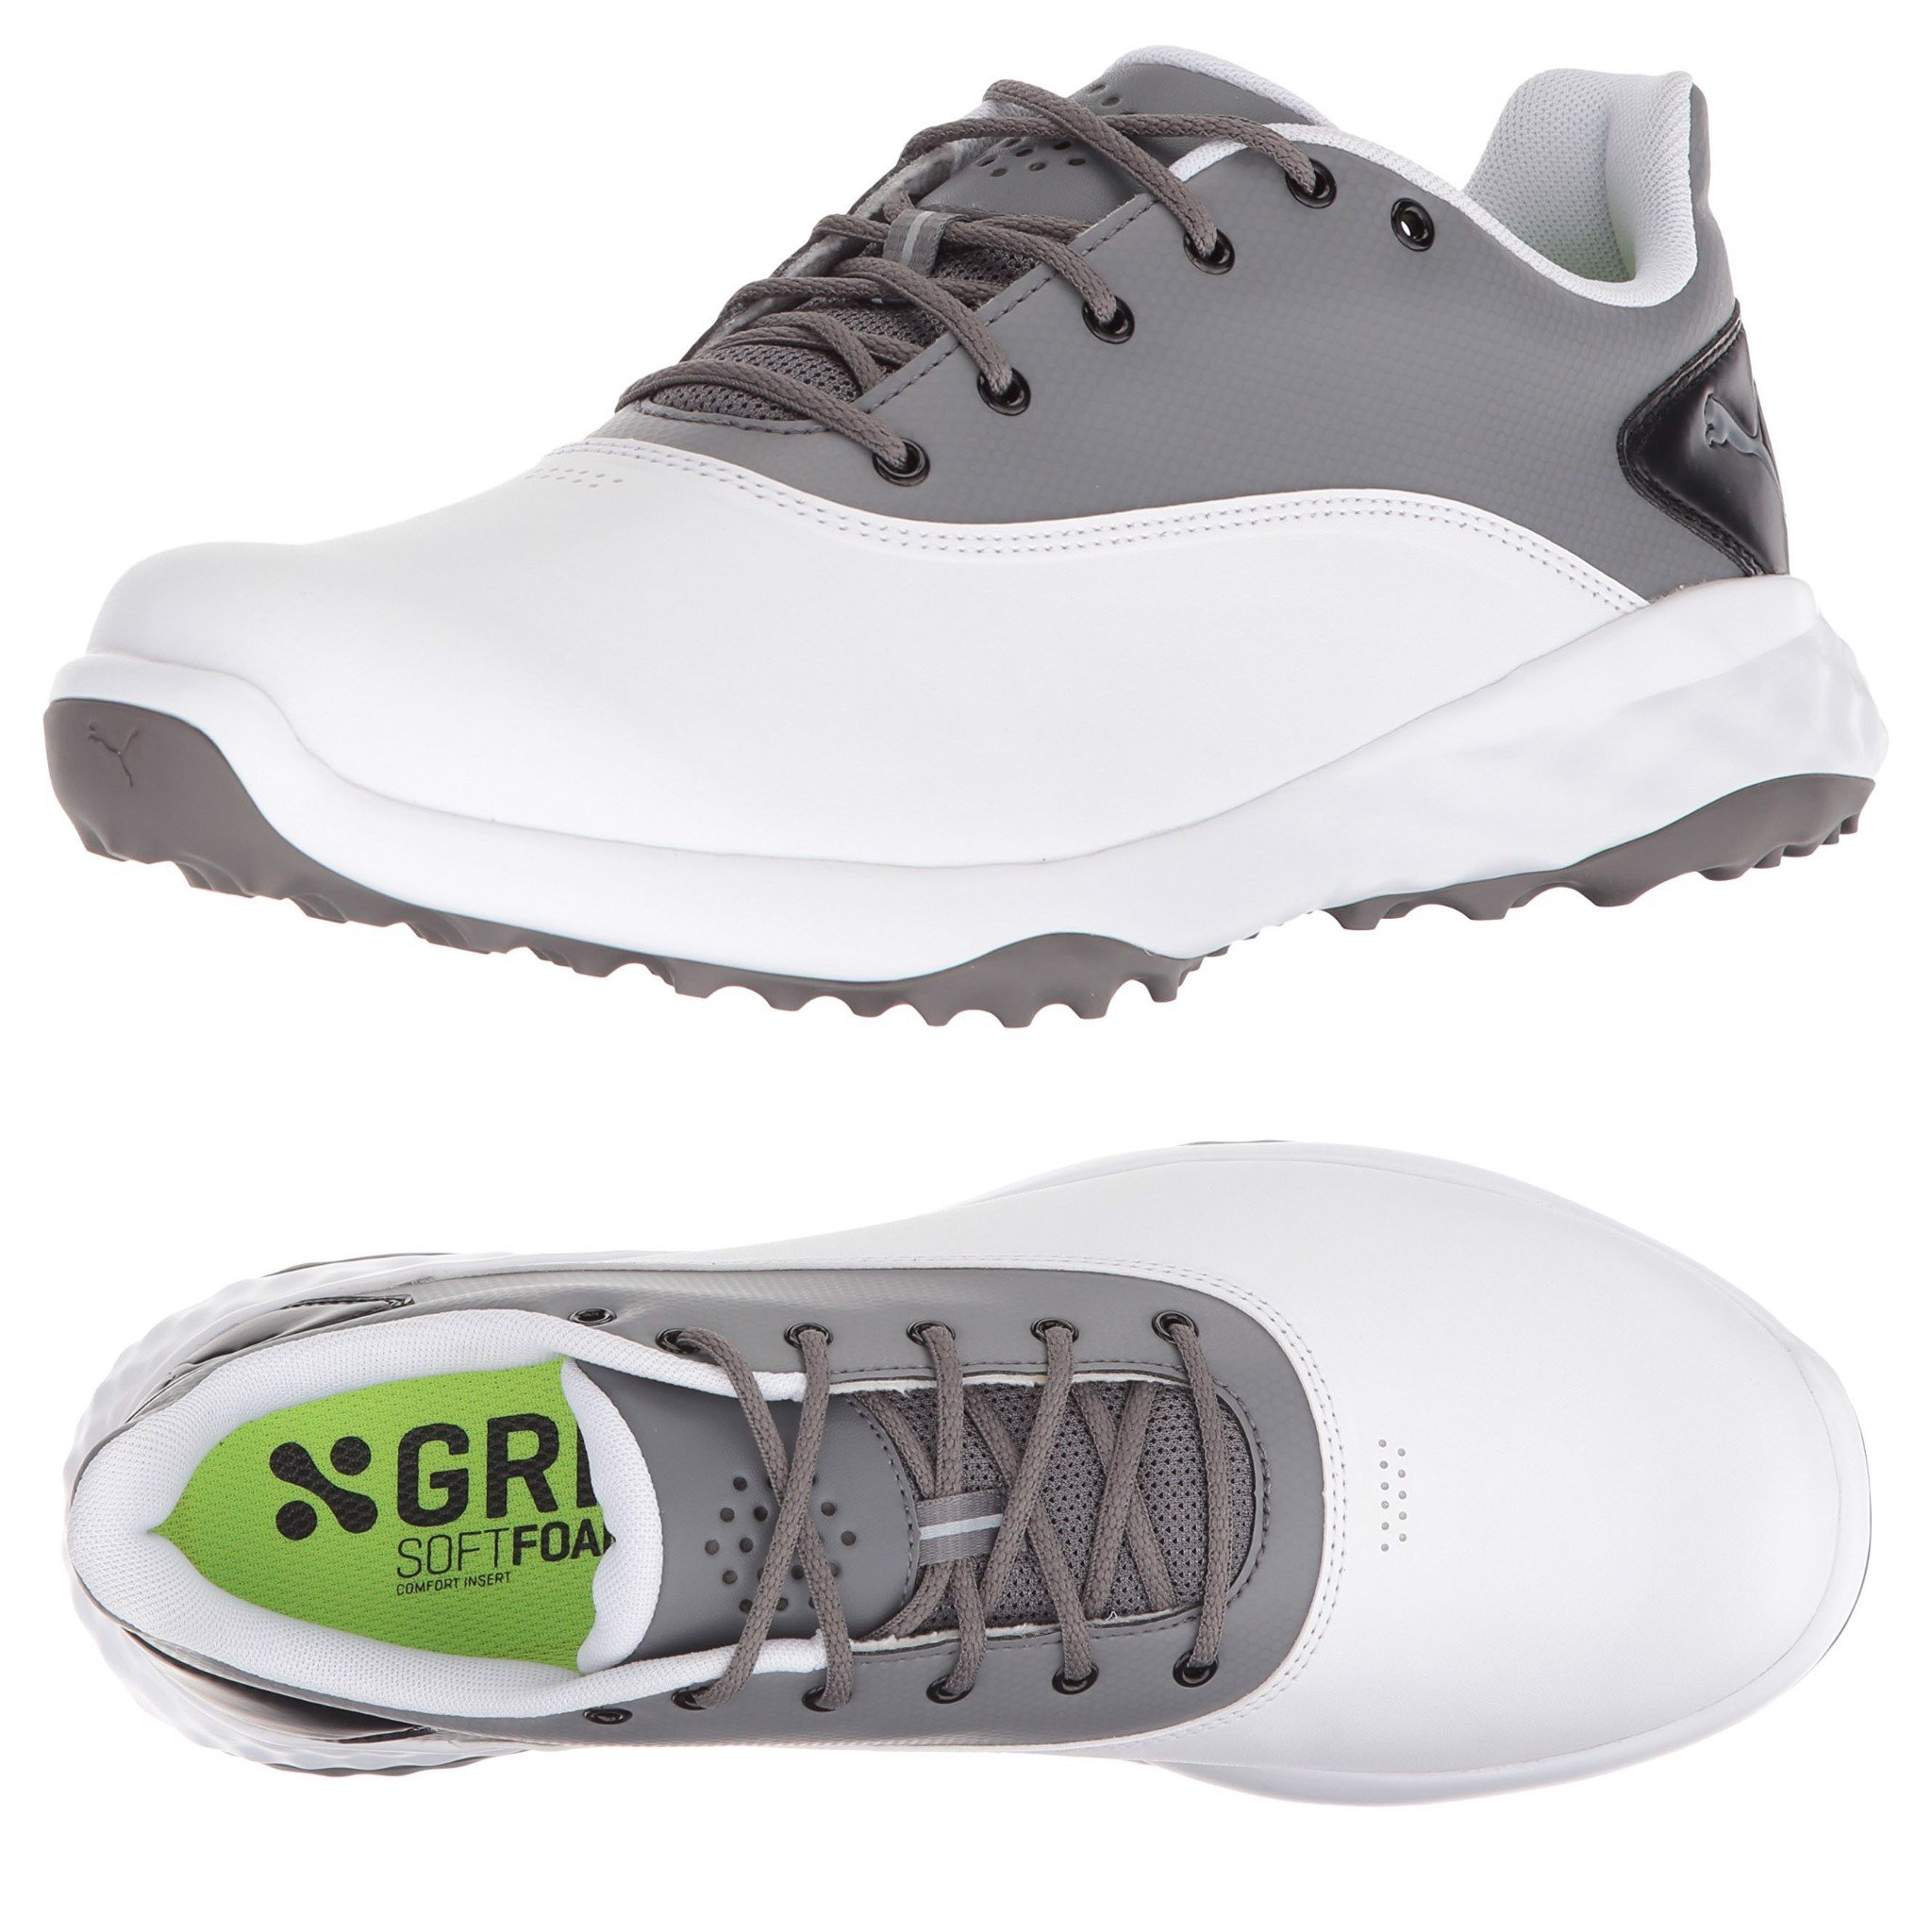 Giày golf nam GRIP FUSION Men's Shoes 189425 03 | PUMA